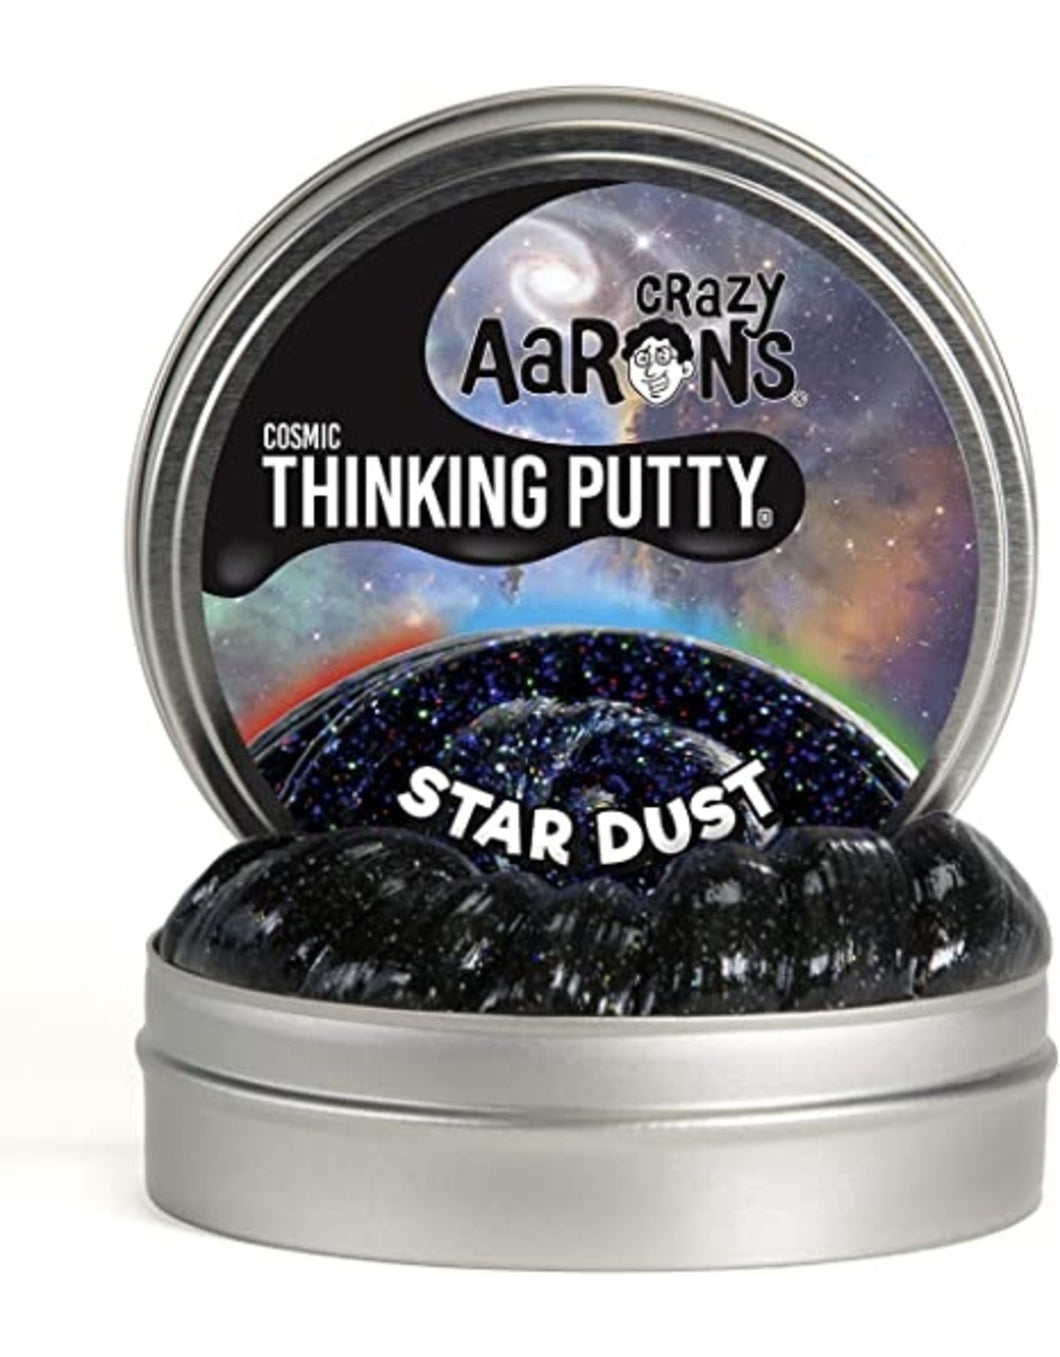 Crazy Aaron's Thinking Putty Cosmic Glows Star Dust